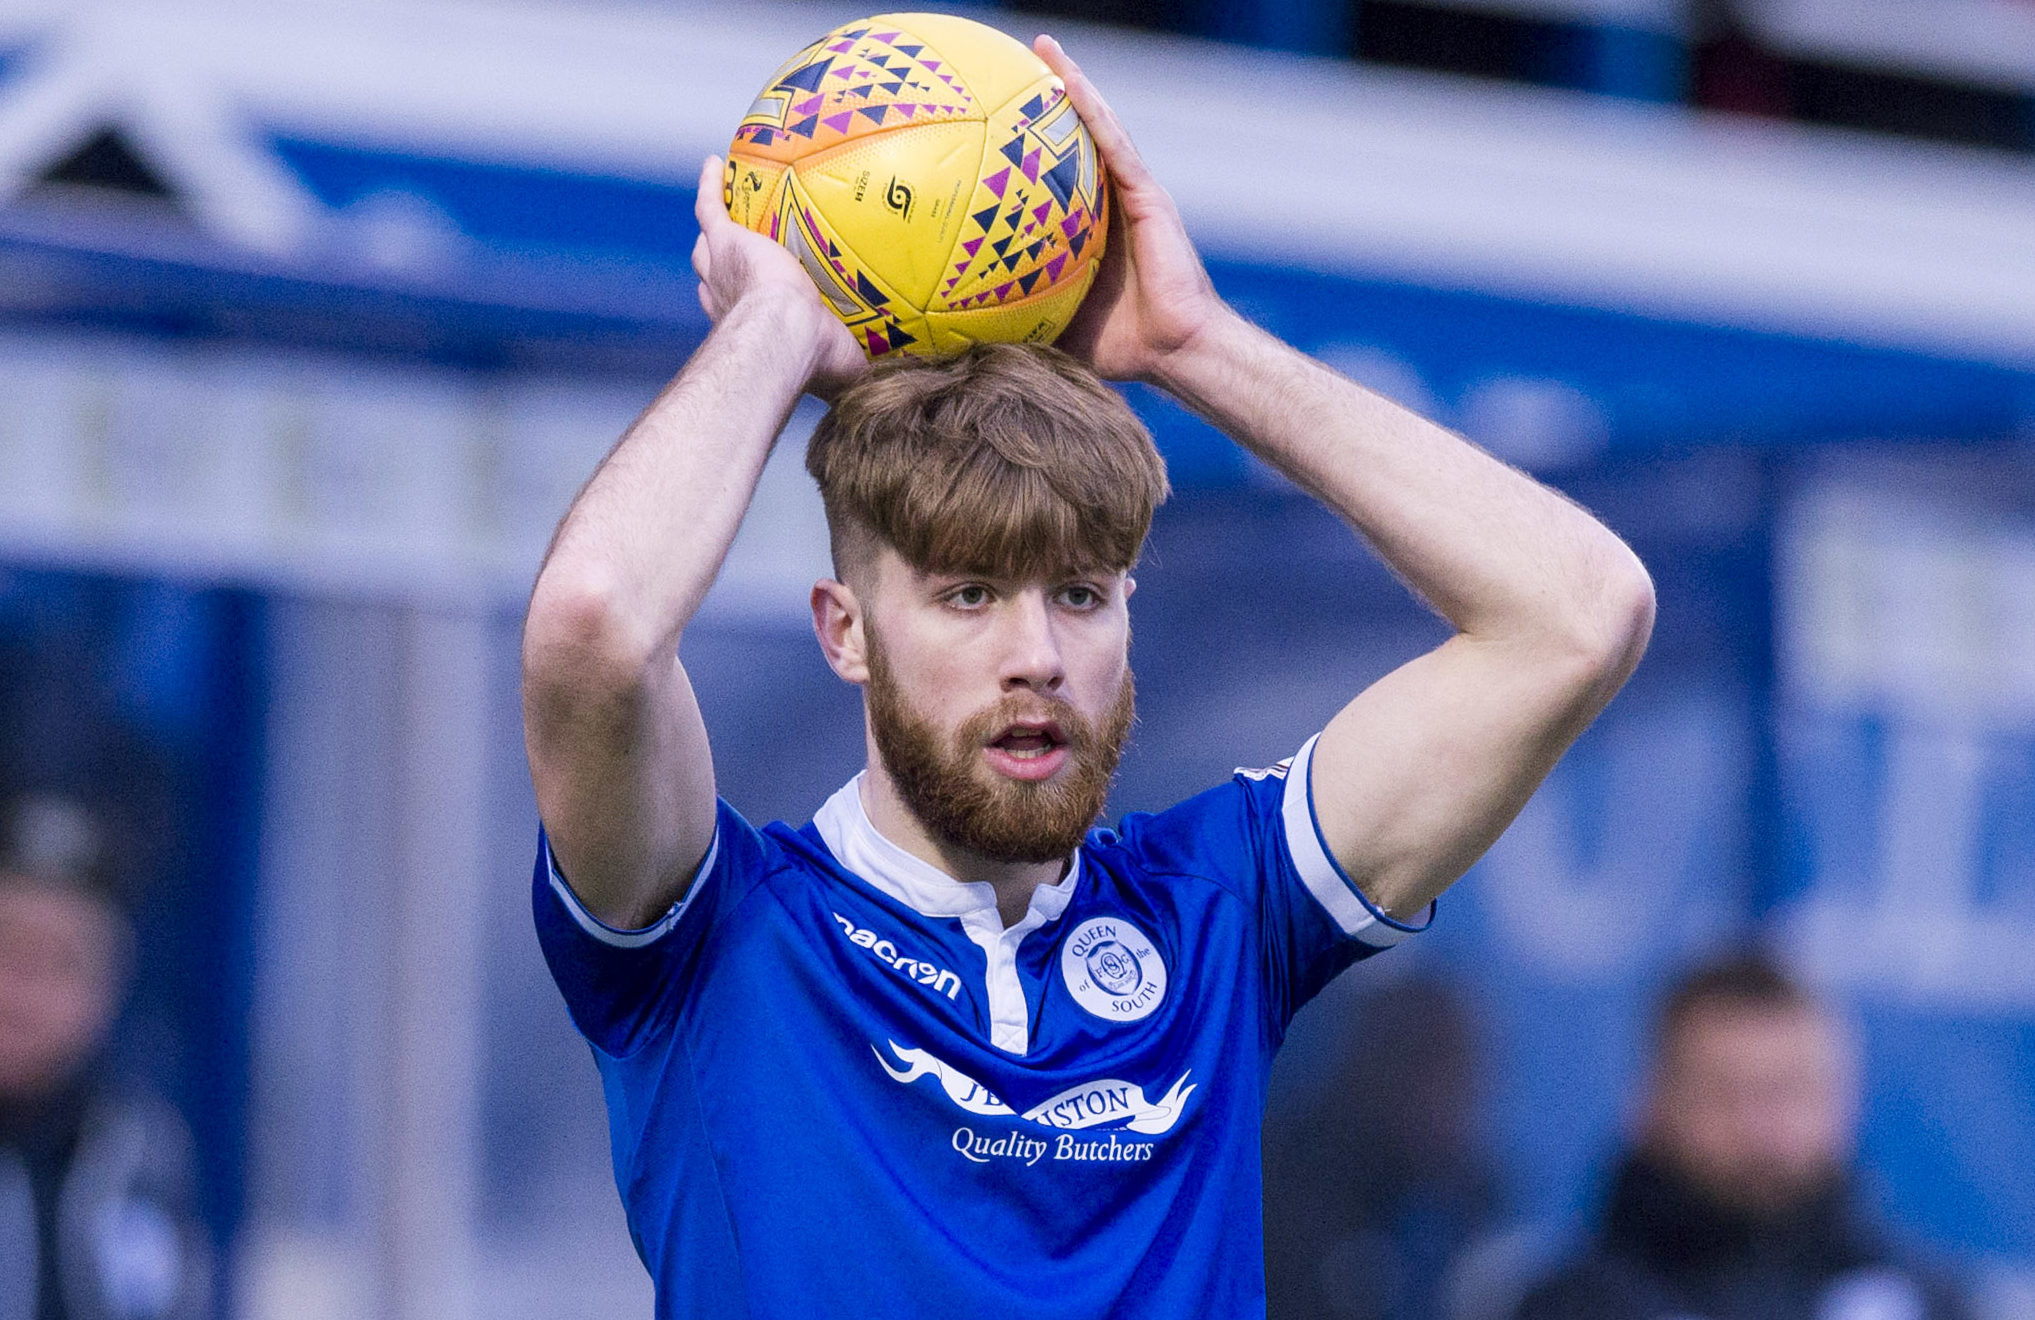 Shaun Rooney in action for Queen of the South.